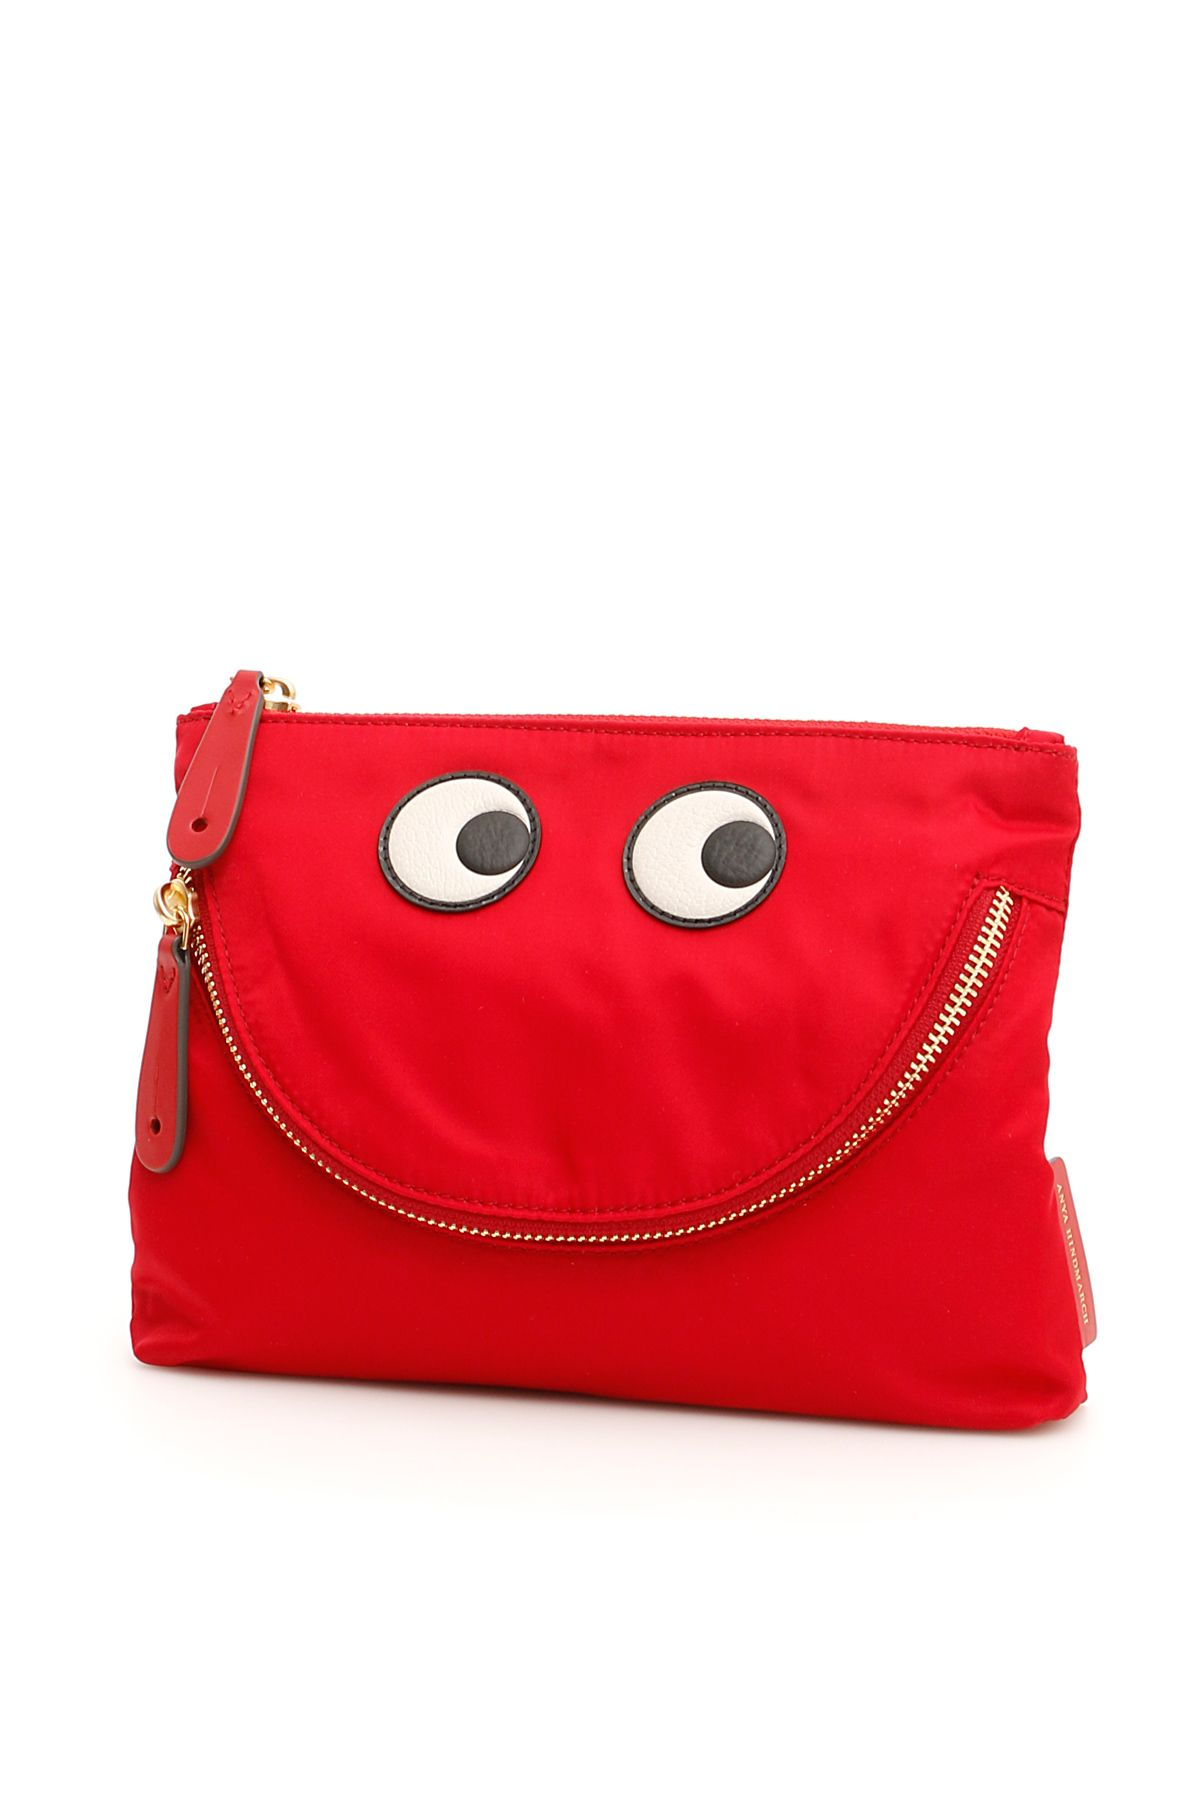 Happy Eyes Pouch in Red